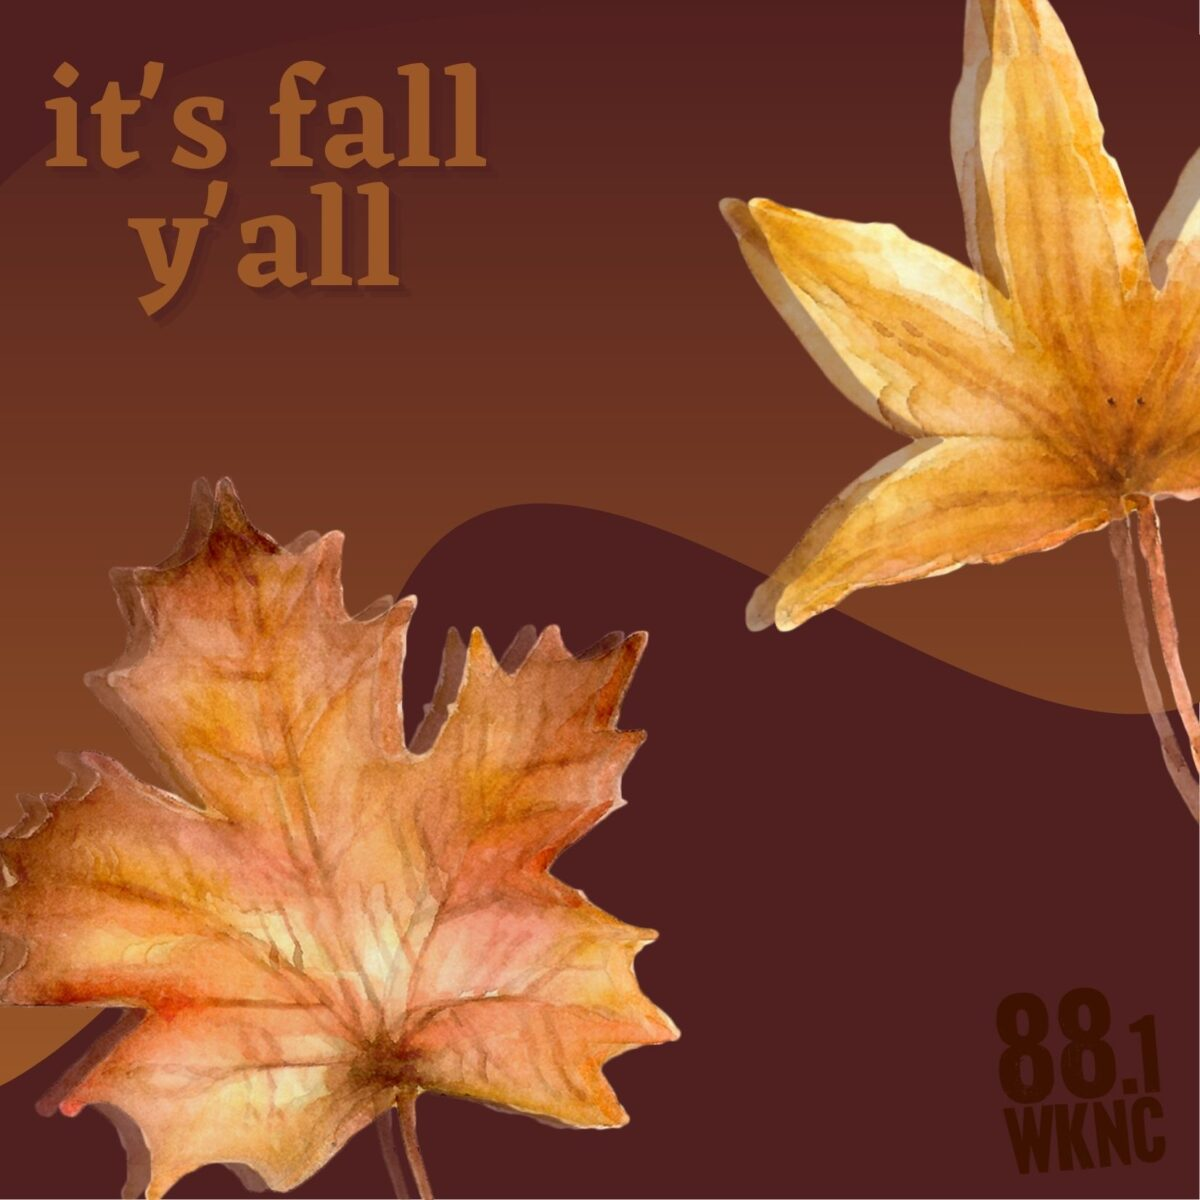 """Brown background image with red and orange leaves overlayed with text that reads """"it's fall y'all"""" in the upper elft hand corner and """"88.1 WKNC"""" in the bottom left hand corner"""